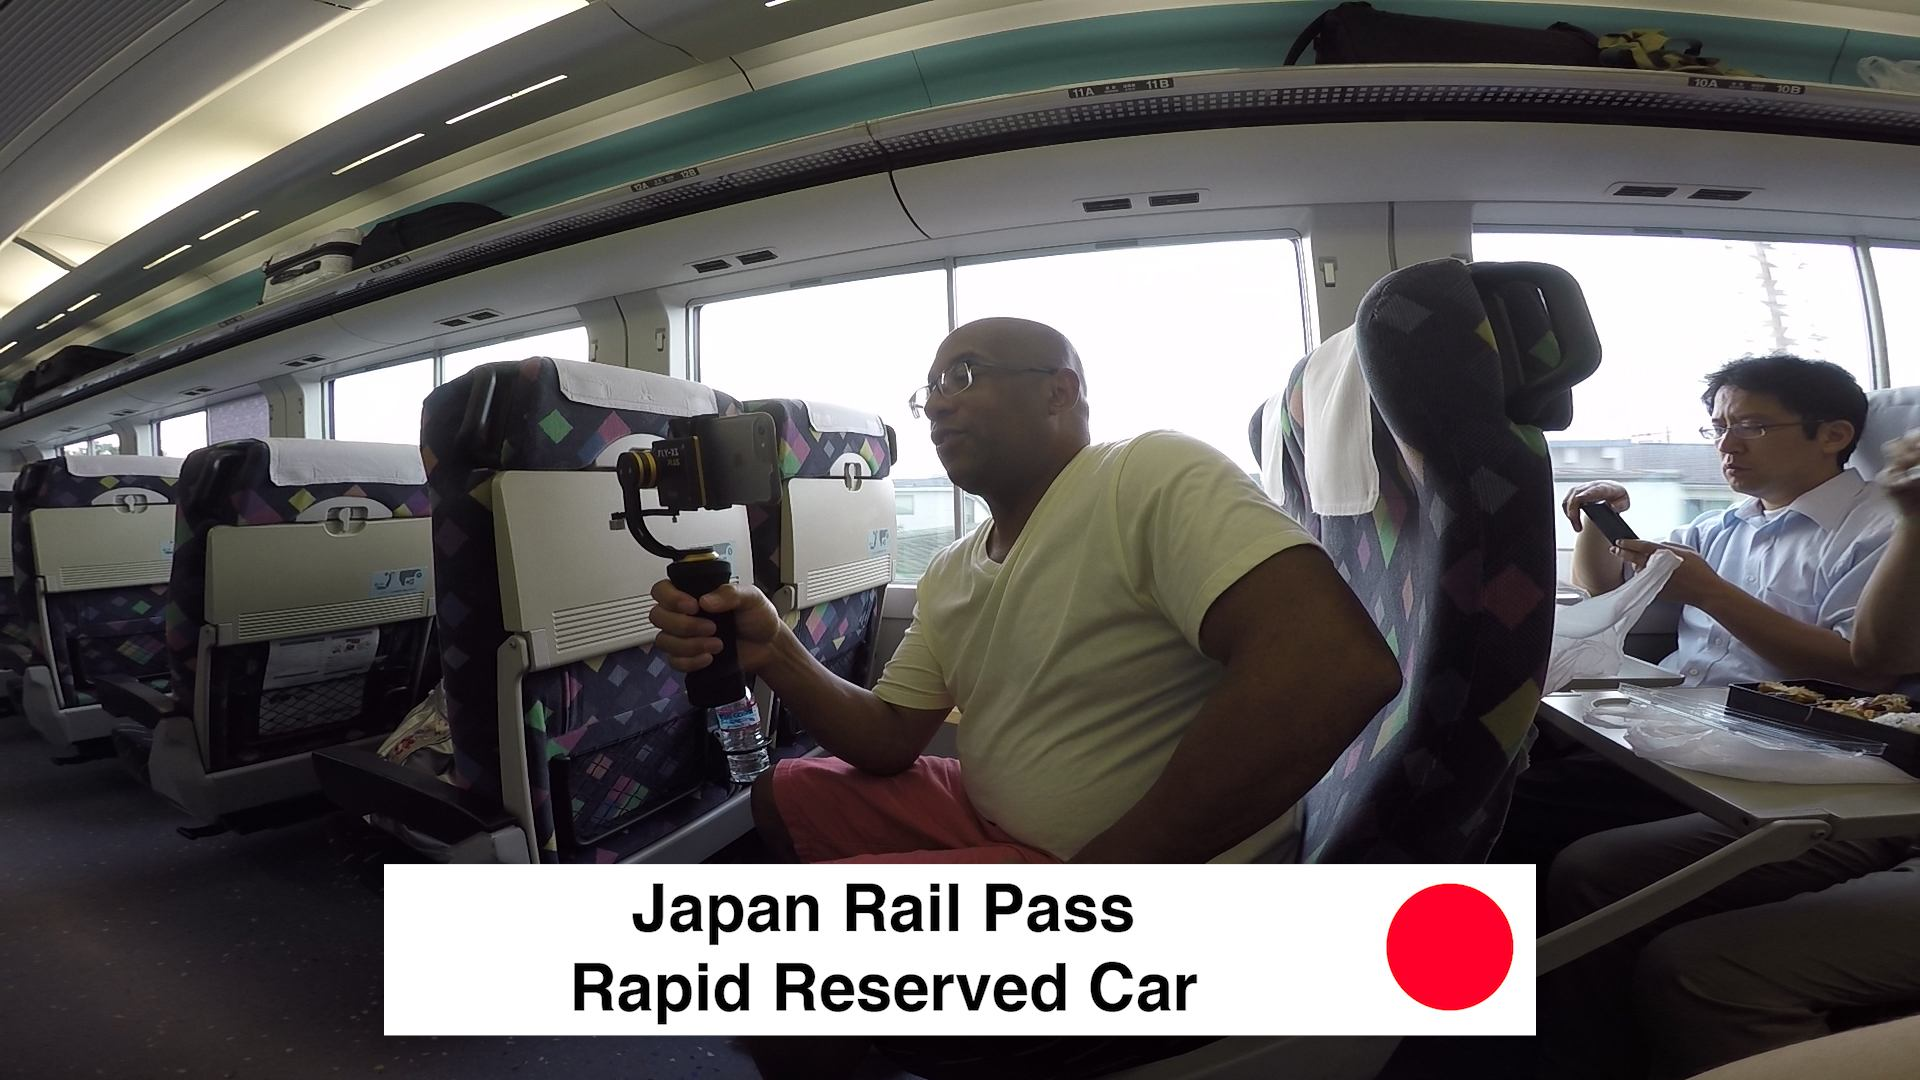 Japan Rail Rapid Reserved Car - Where To Buy Japan Rail Pass How To Use JR Pass In Tokyo. JR Pass Price